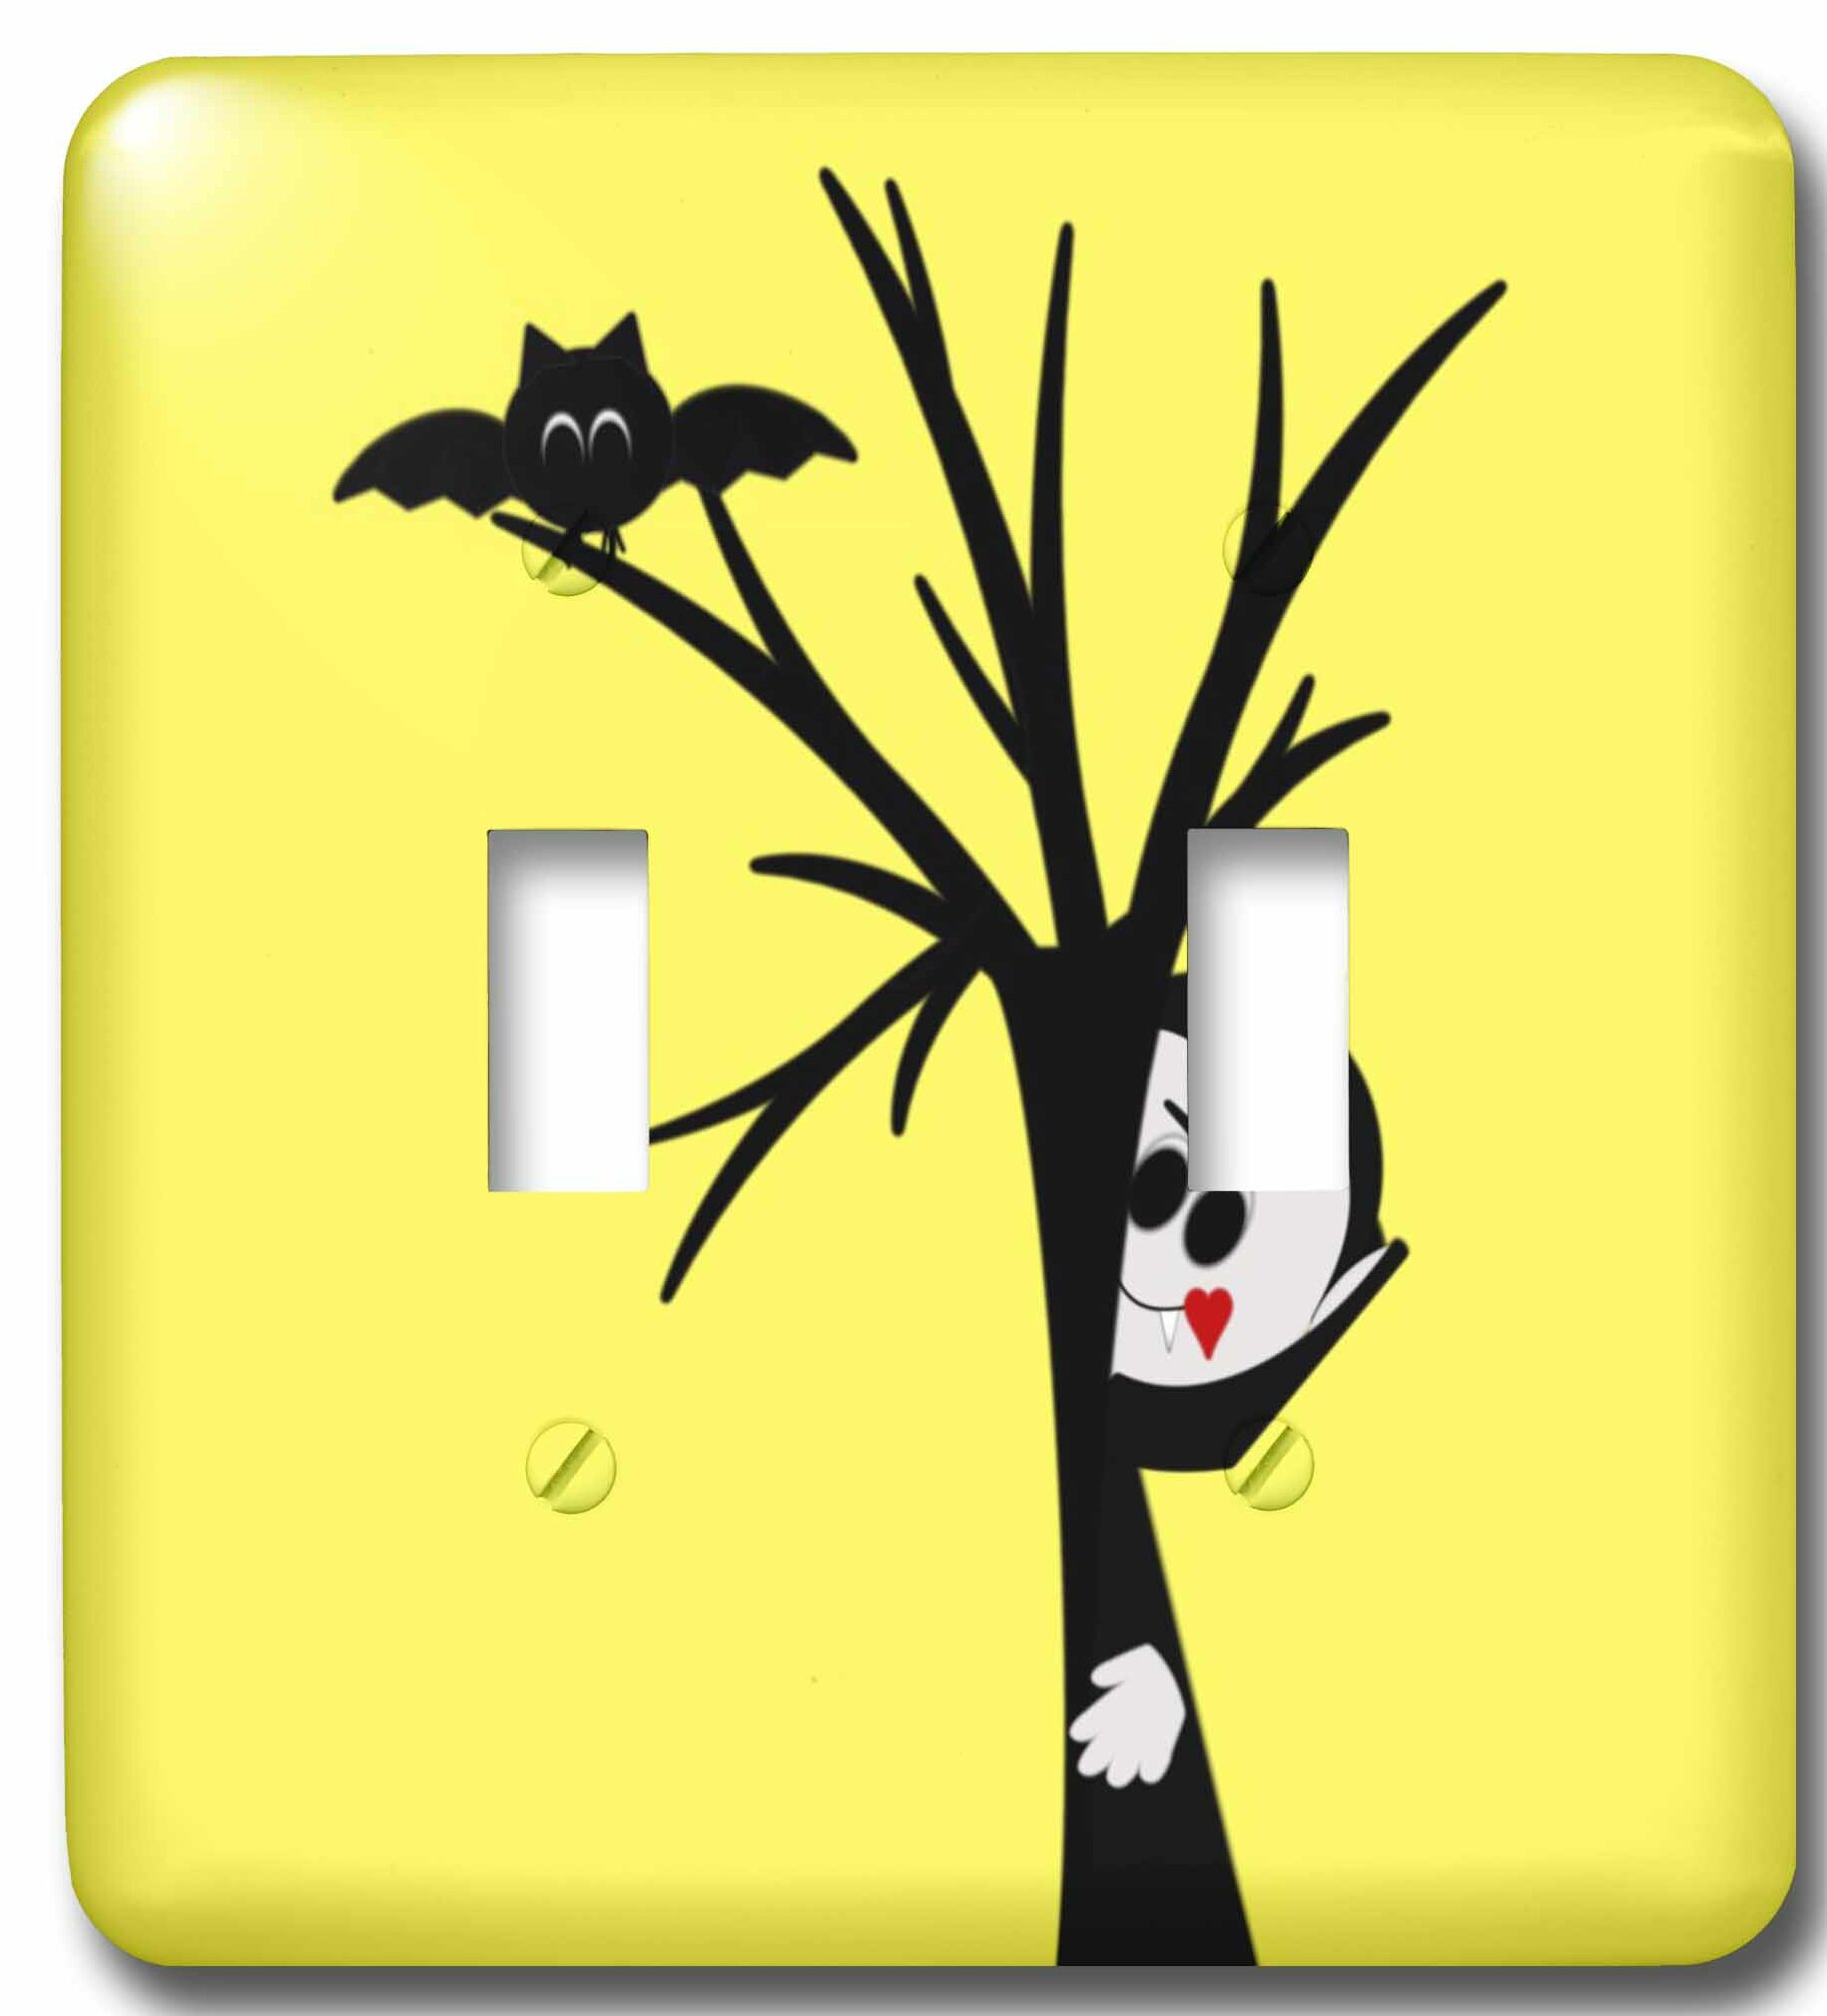 3drose Vampire Hiding Behind A Tree 2 Gang Toggle Light Switch Wall Plate Wayfair